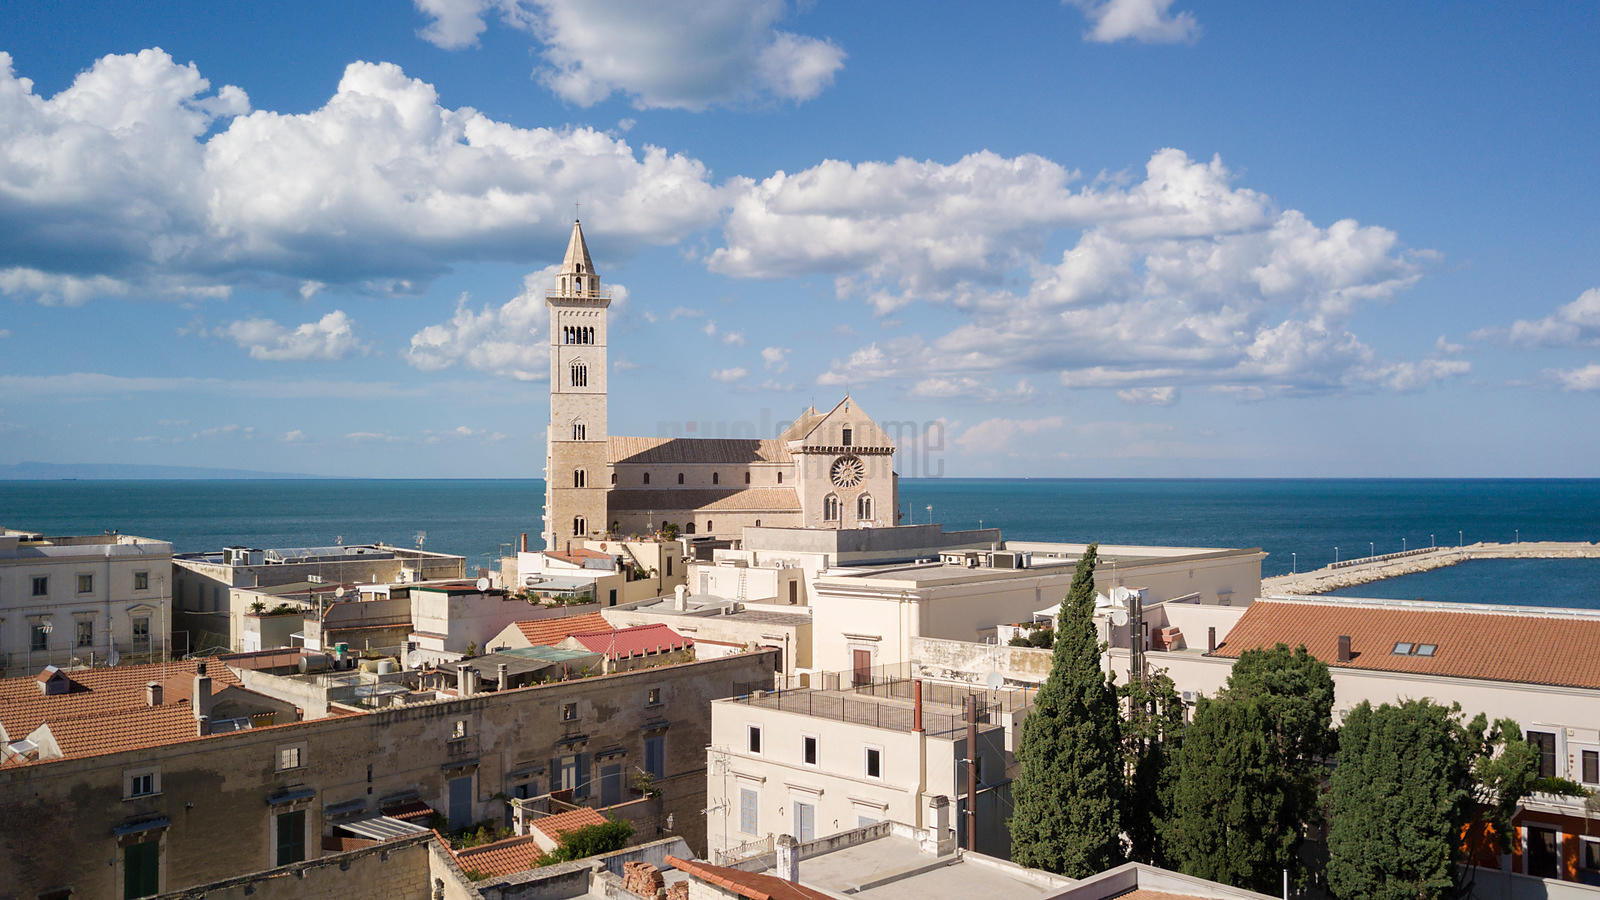 Aerial View of the Cathedral at Trani